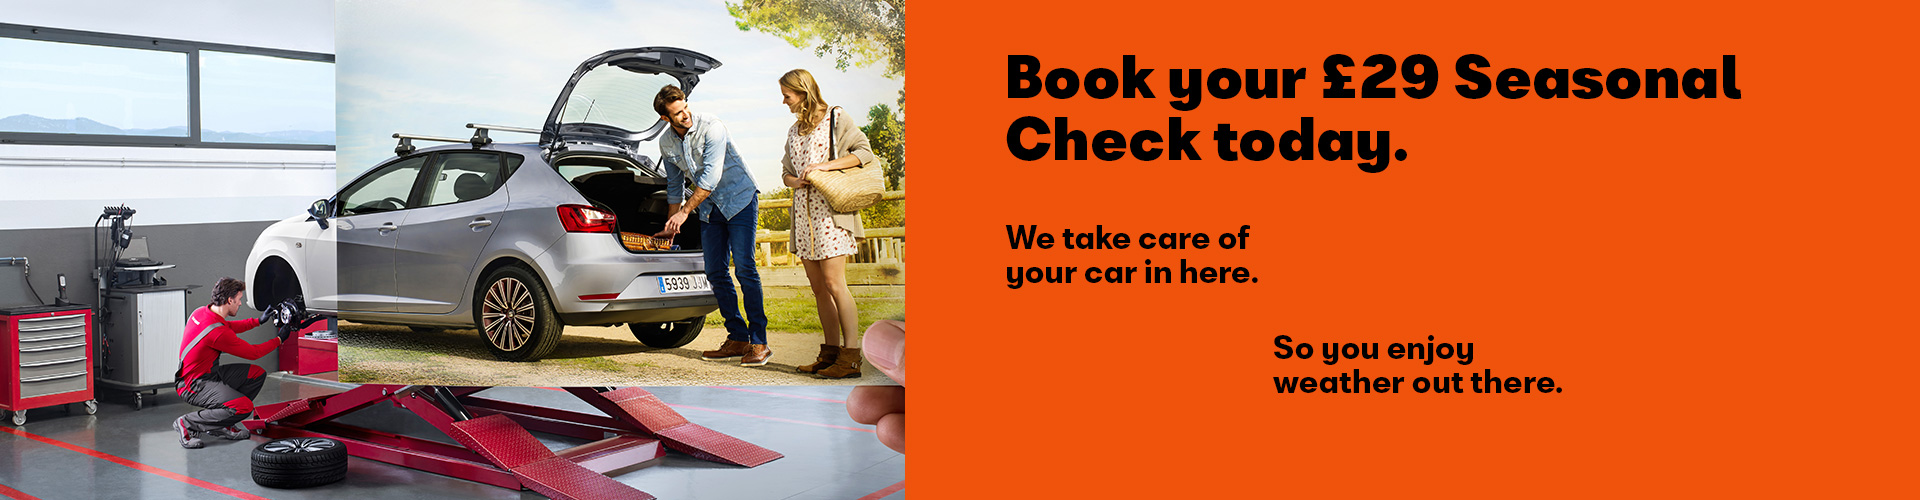 SEAT Seasonal Check - £29